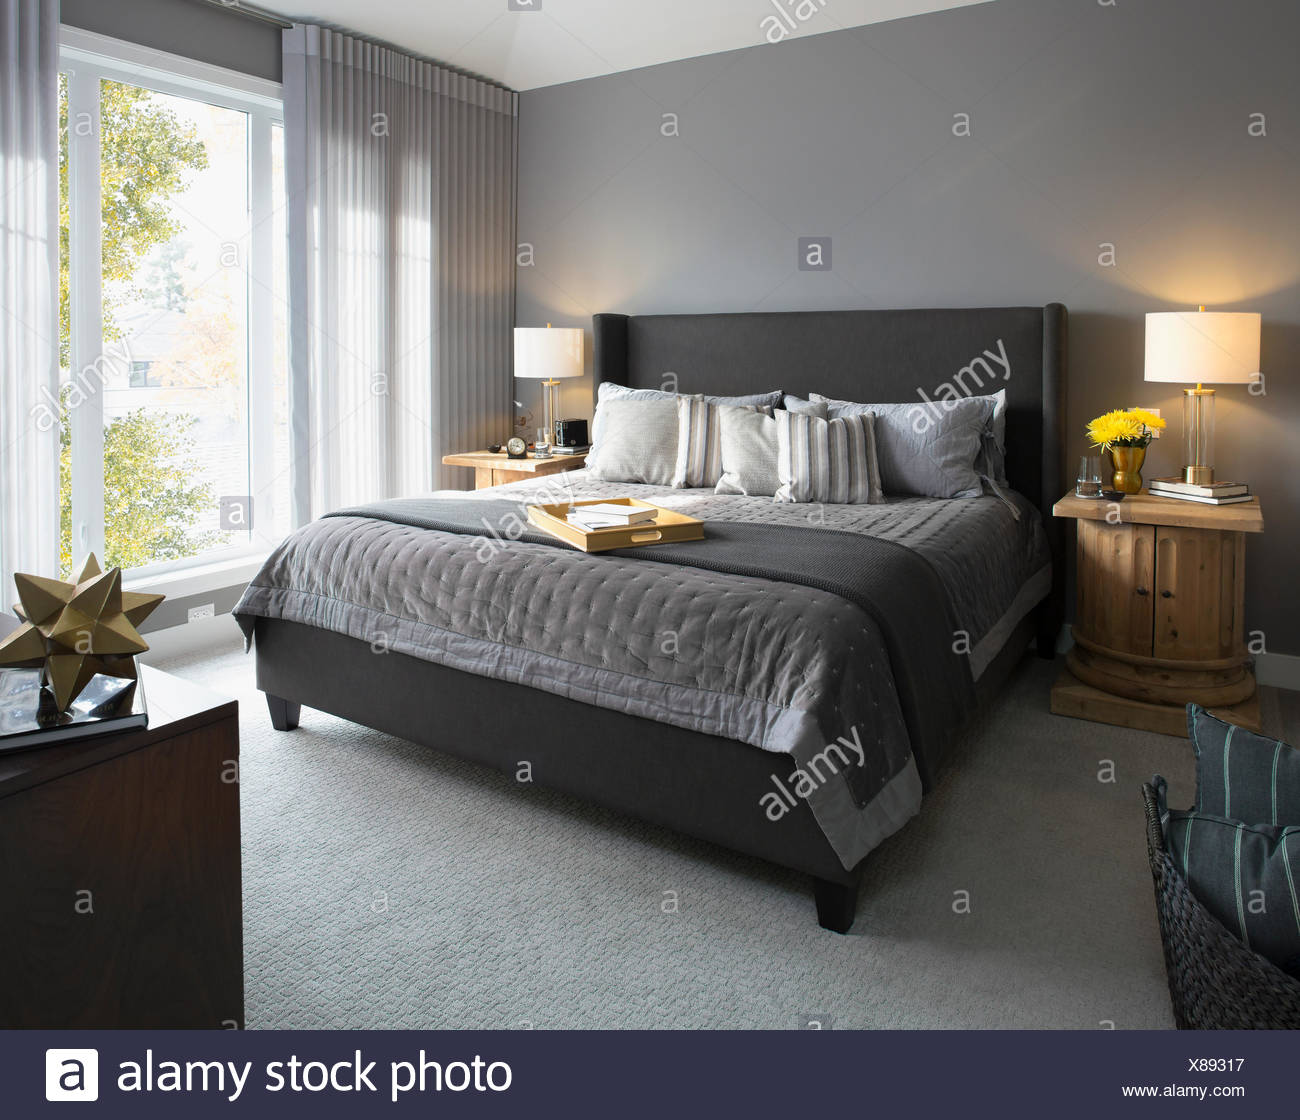 Elegant Modern Home Showcase Interior Bedroom Stock Photo